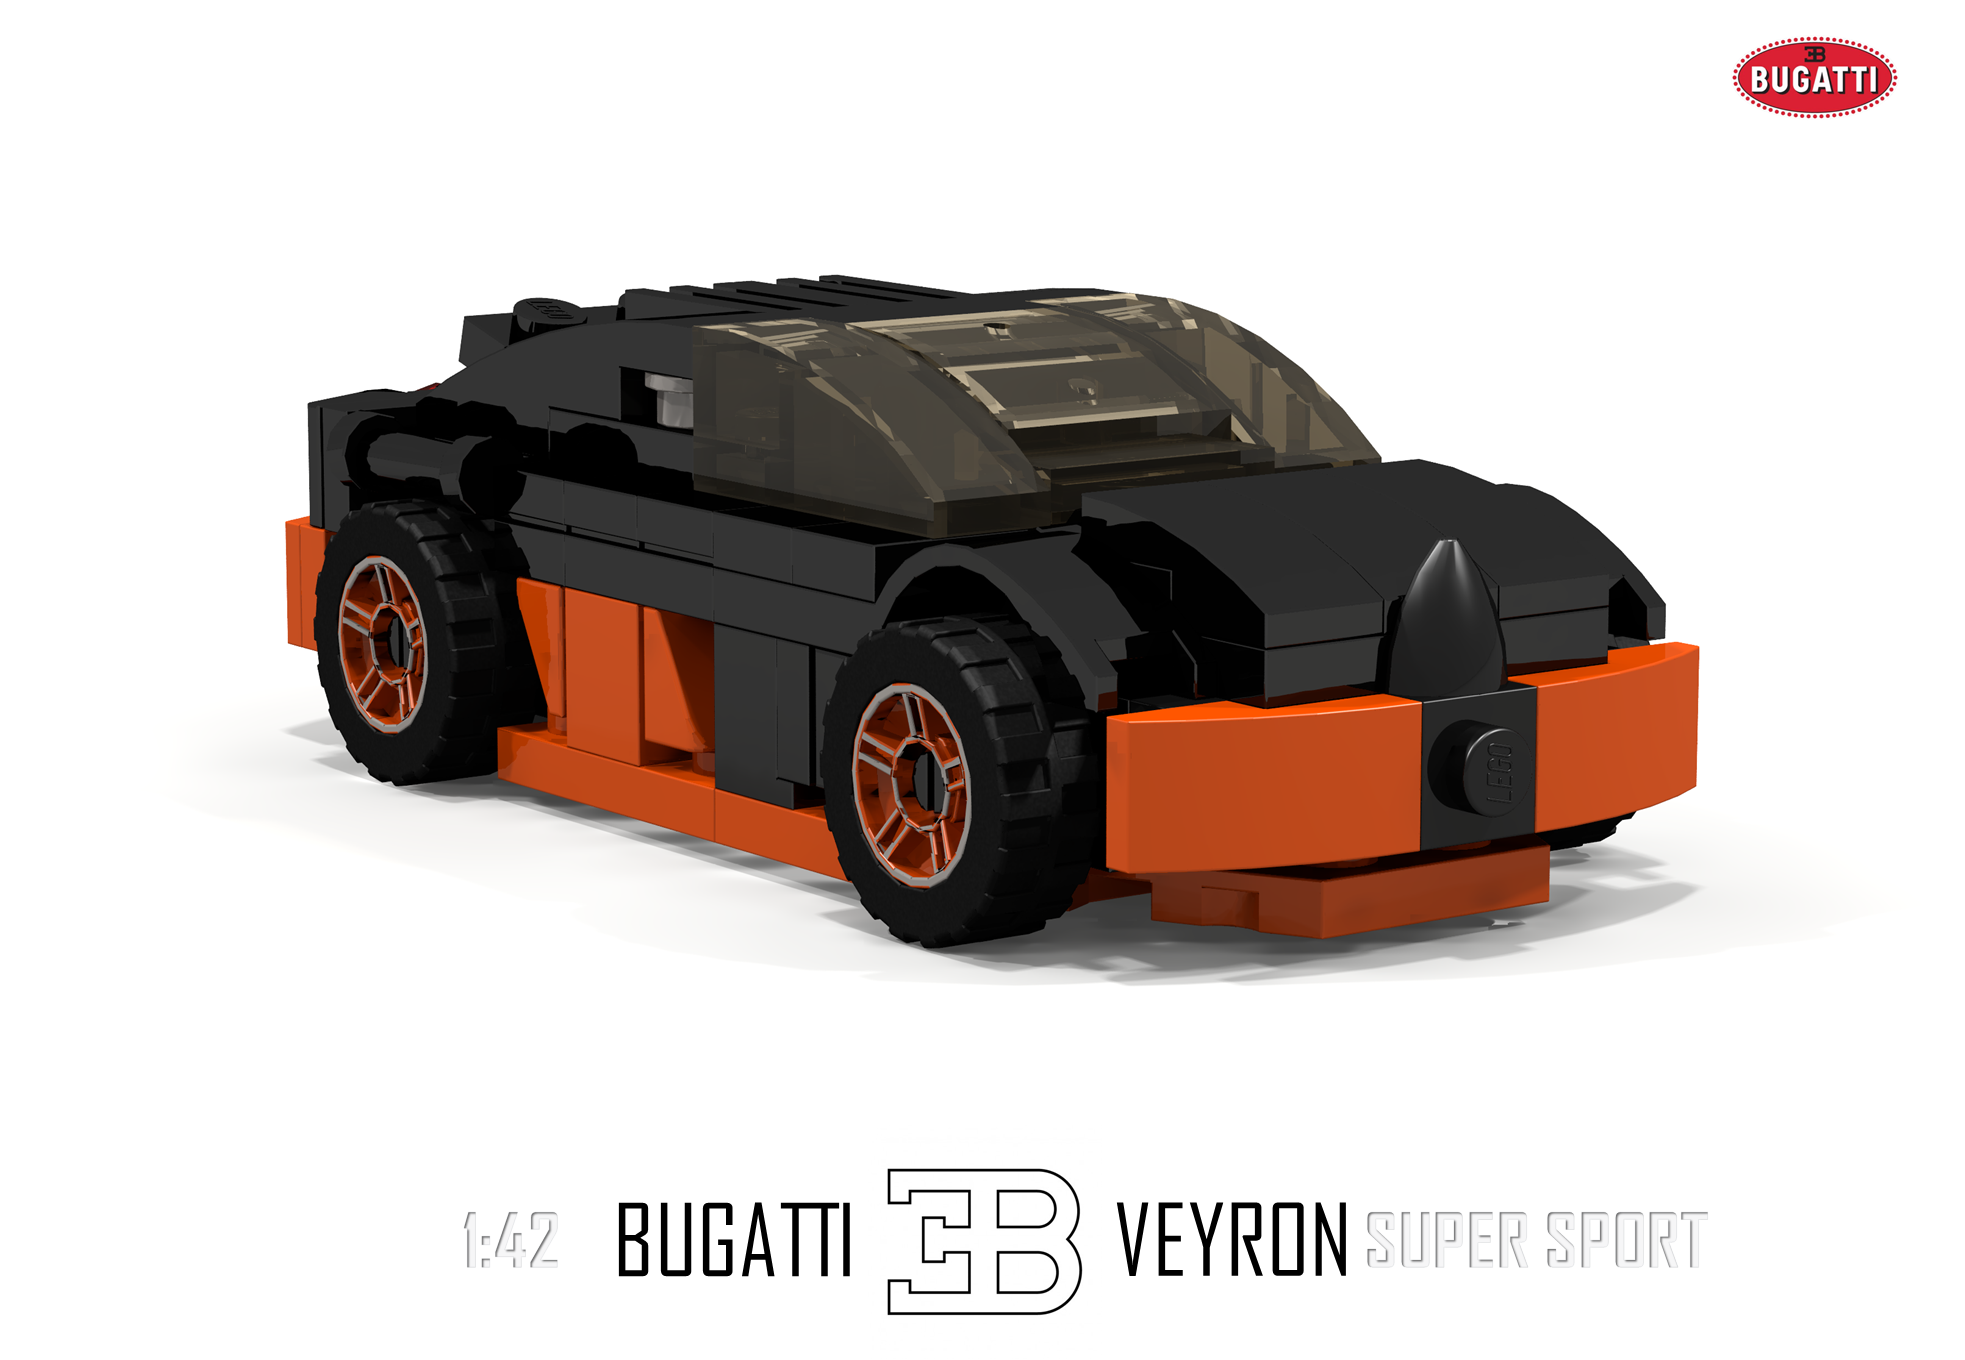 bugatti_veyron_super_sport_1to42_03.png